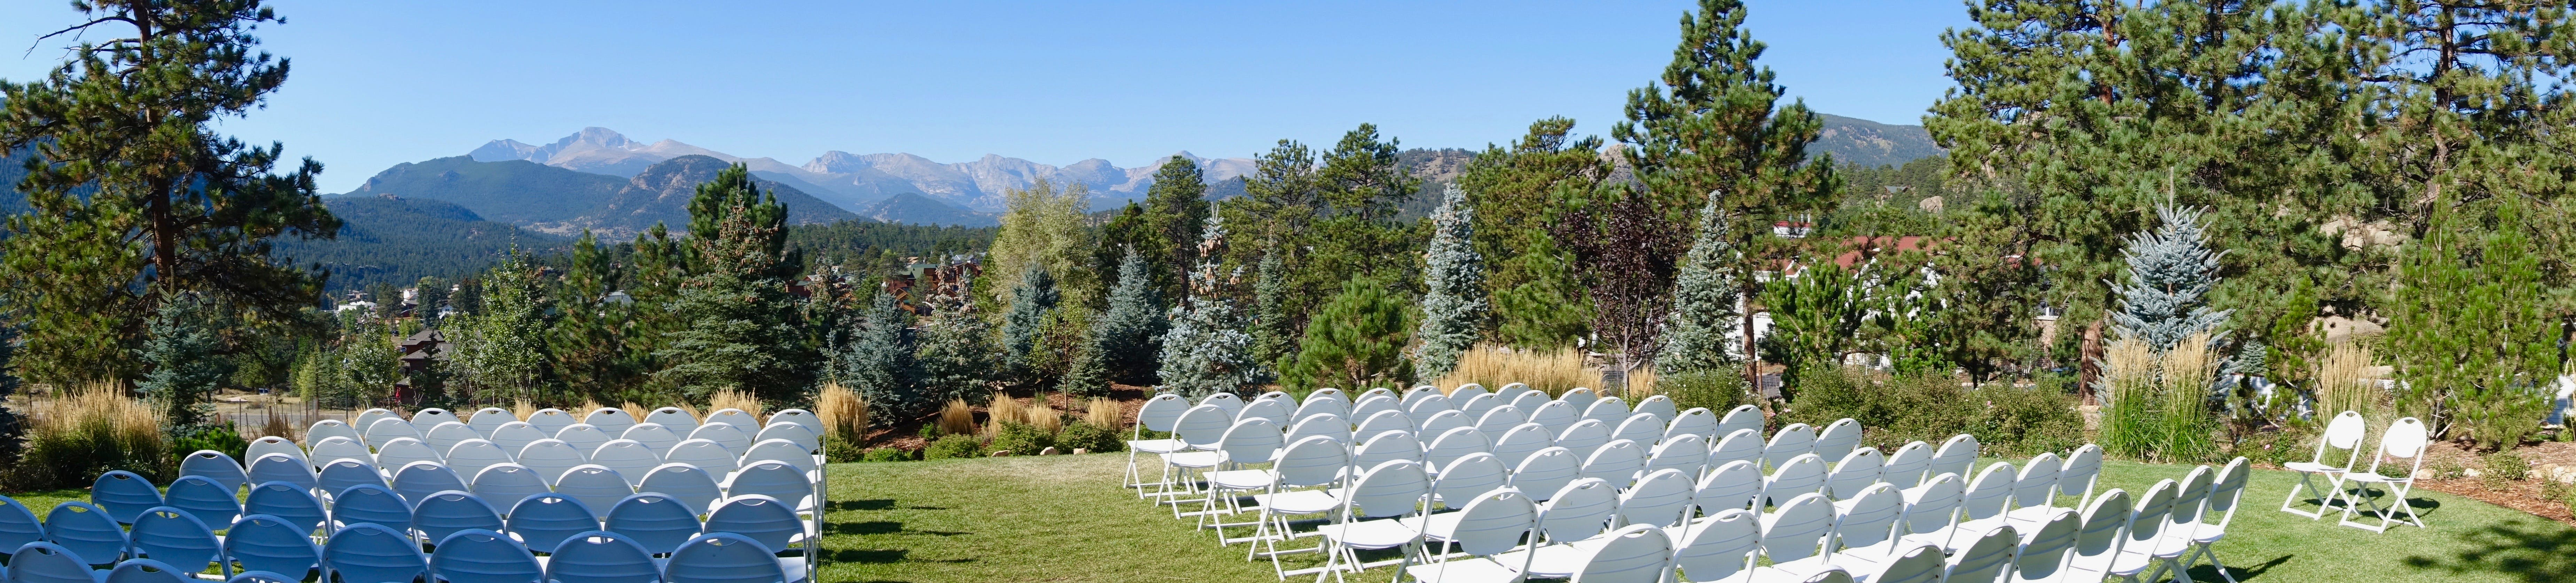 Free stock photo of chairs, gathering, modern outdoors, mountains